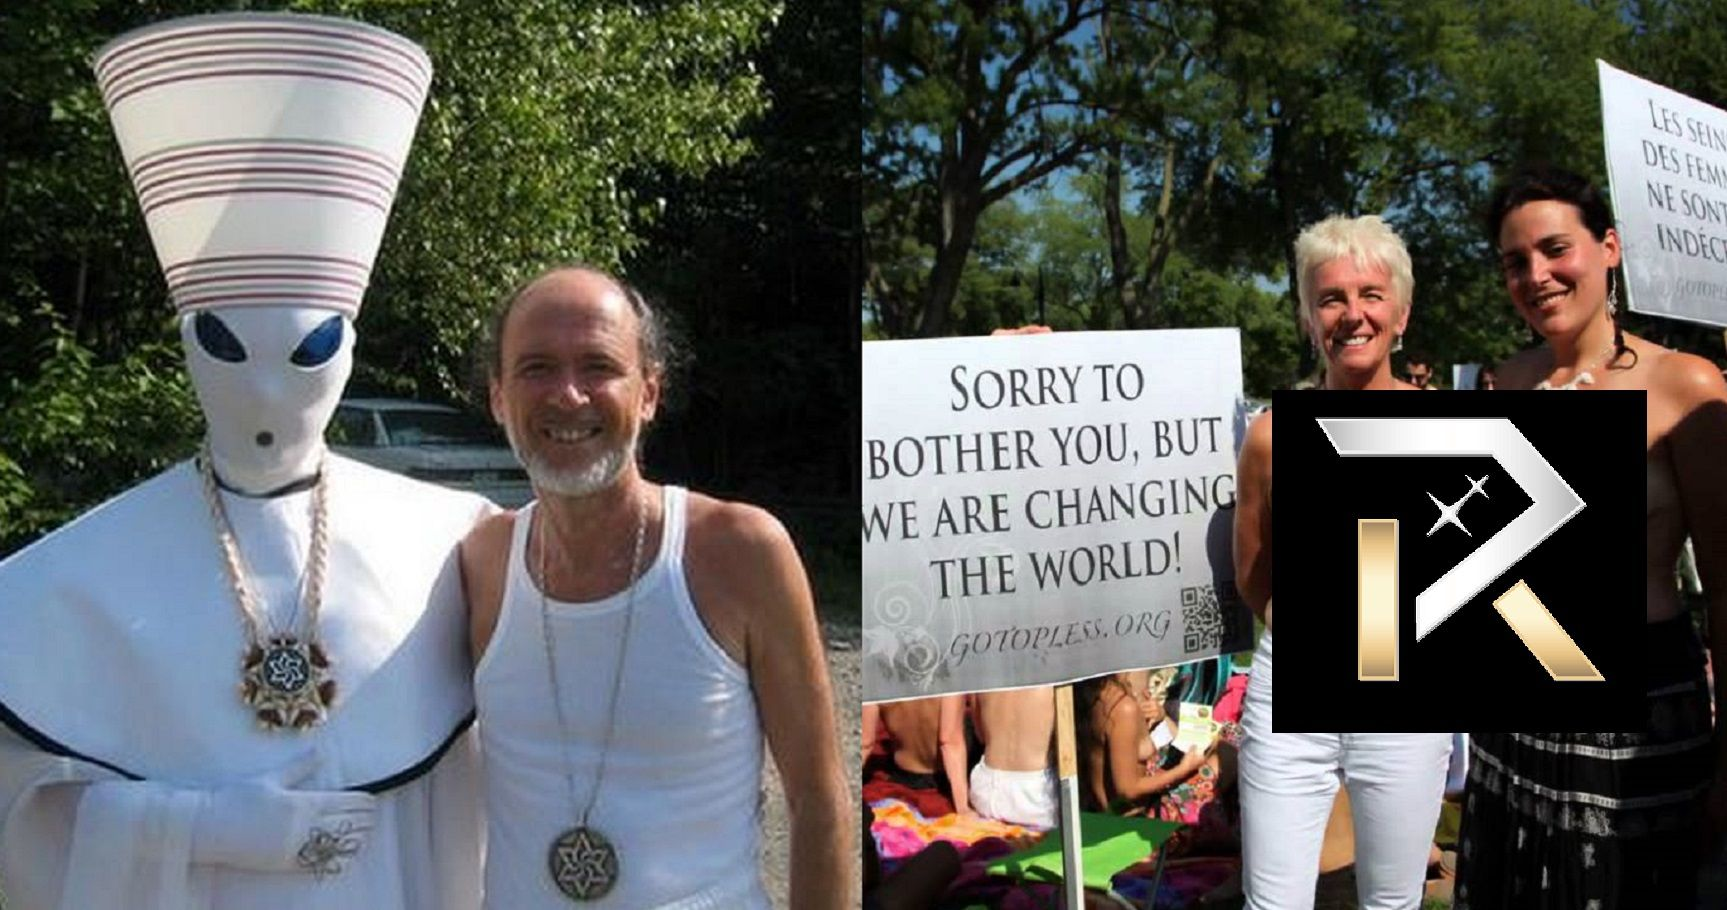 12 Bizarre Cults You Wouldn't Want To Join